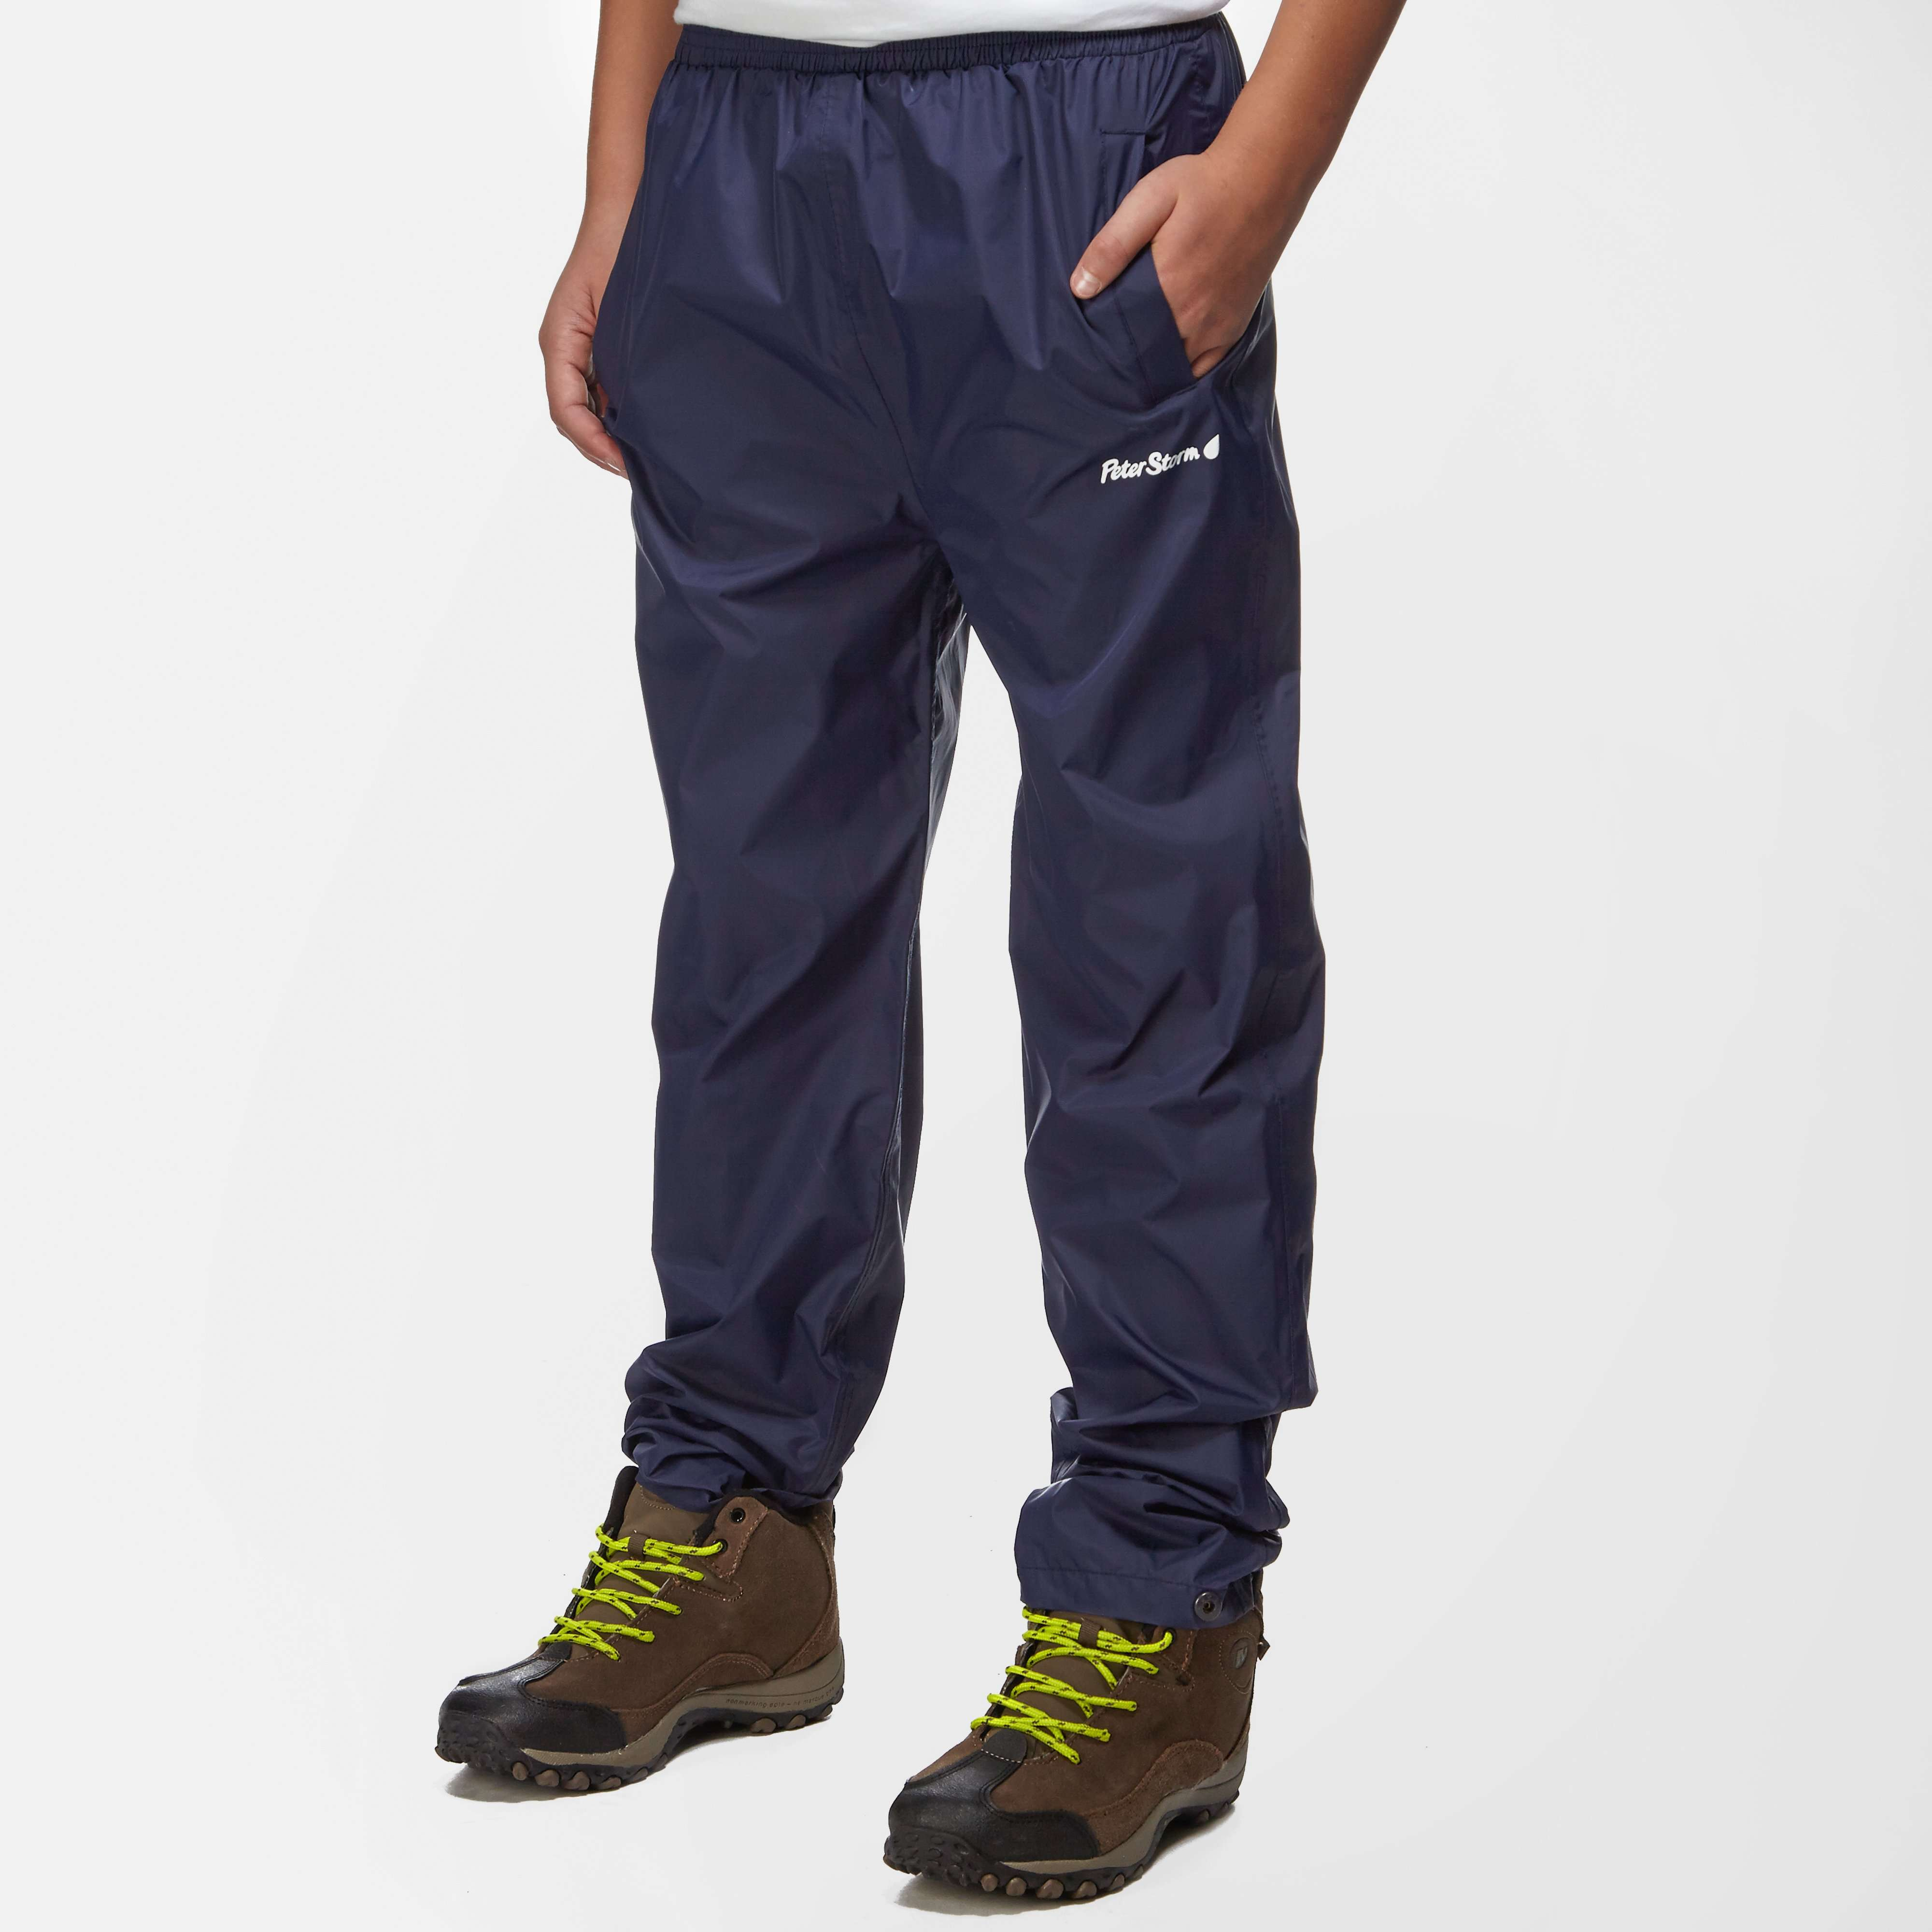 PETER STORM Kids' Packable Pants